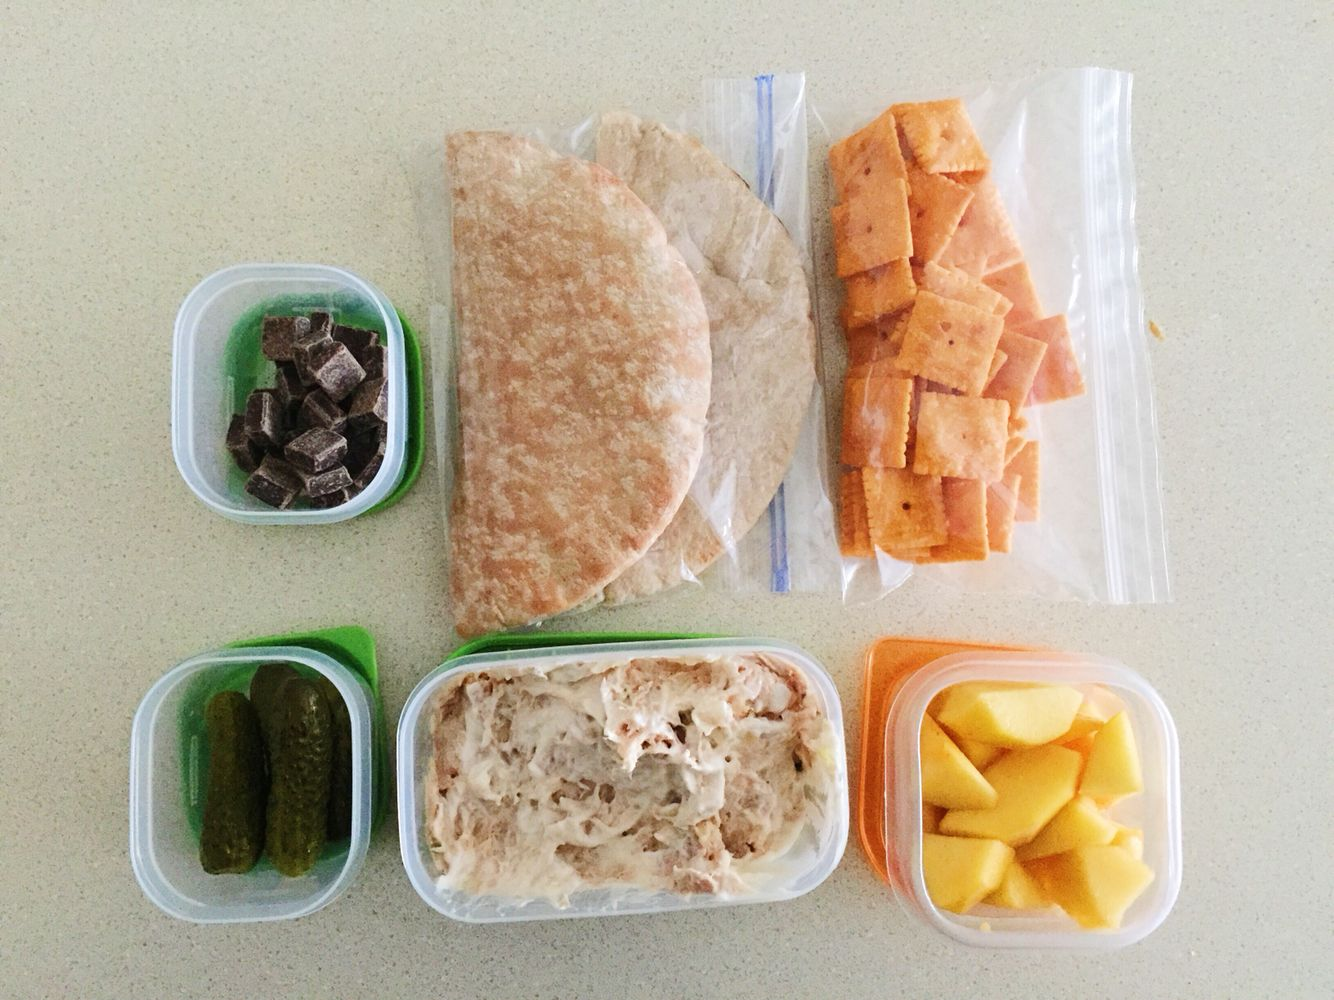 Cheezits, pita pockets, petite pickles, fresh peach slices, tuna salad, and 62% cacao dark chocolate squares.